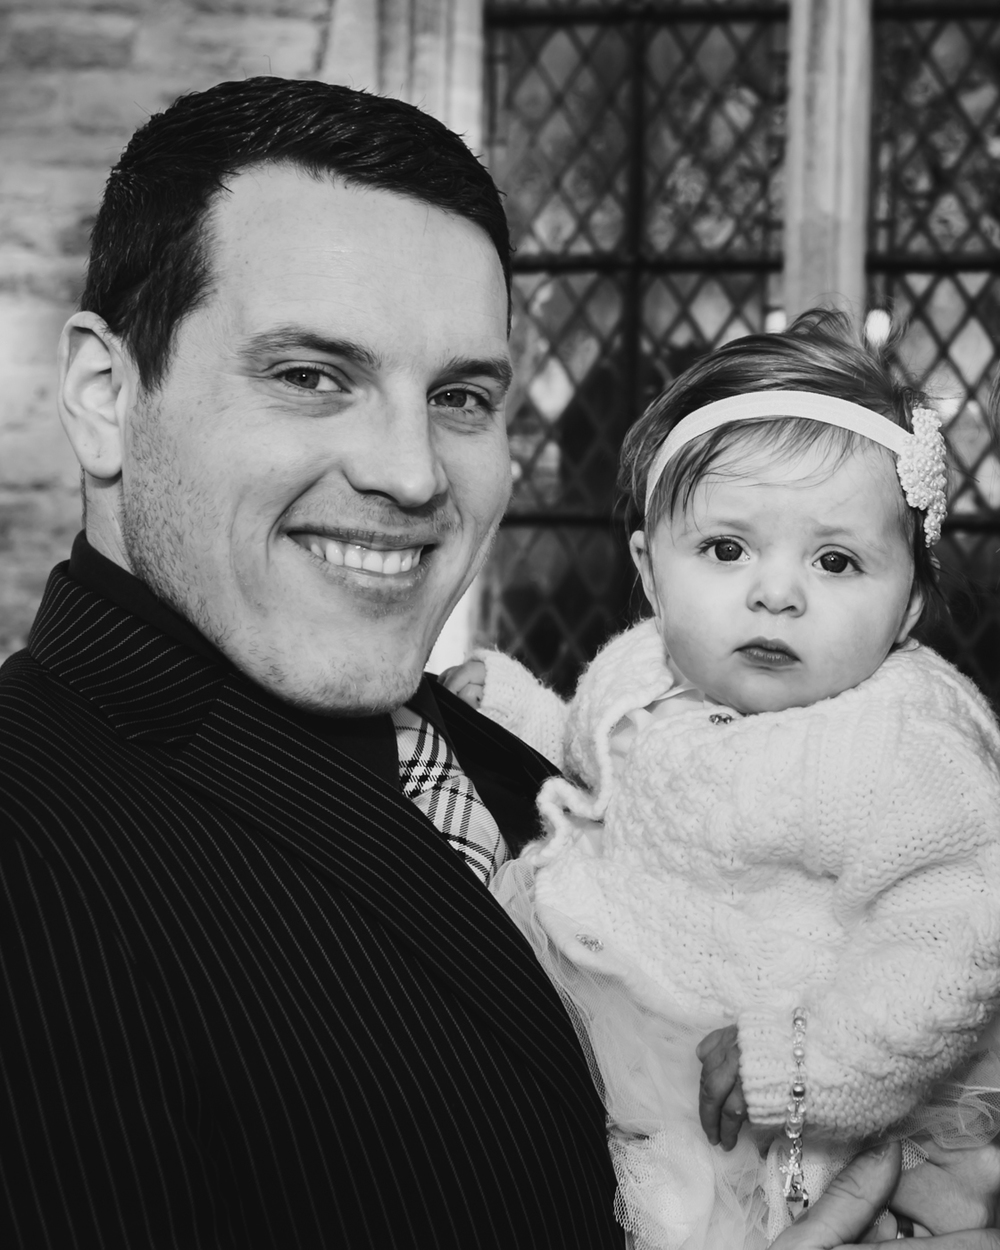 092 - Neave Christening Photography for Claire and Richard N. by Pamela and Mark Pugh www.mpmedia.co.uk -0114.JPG